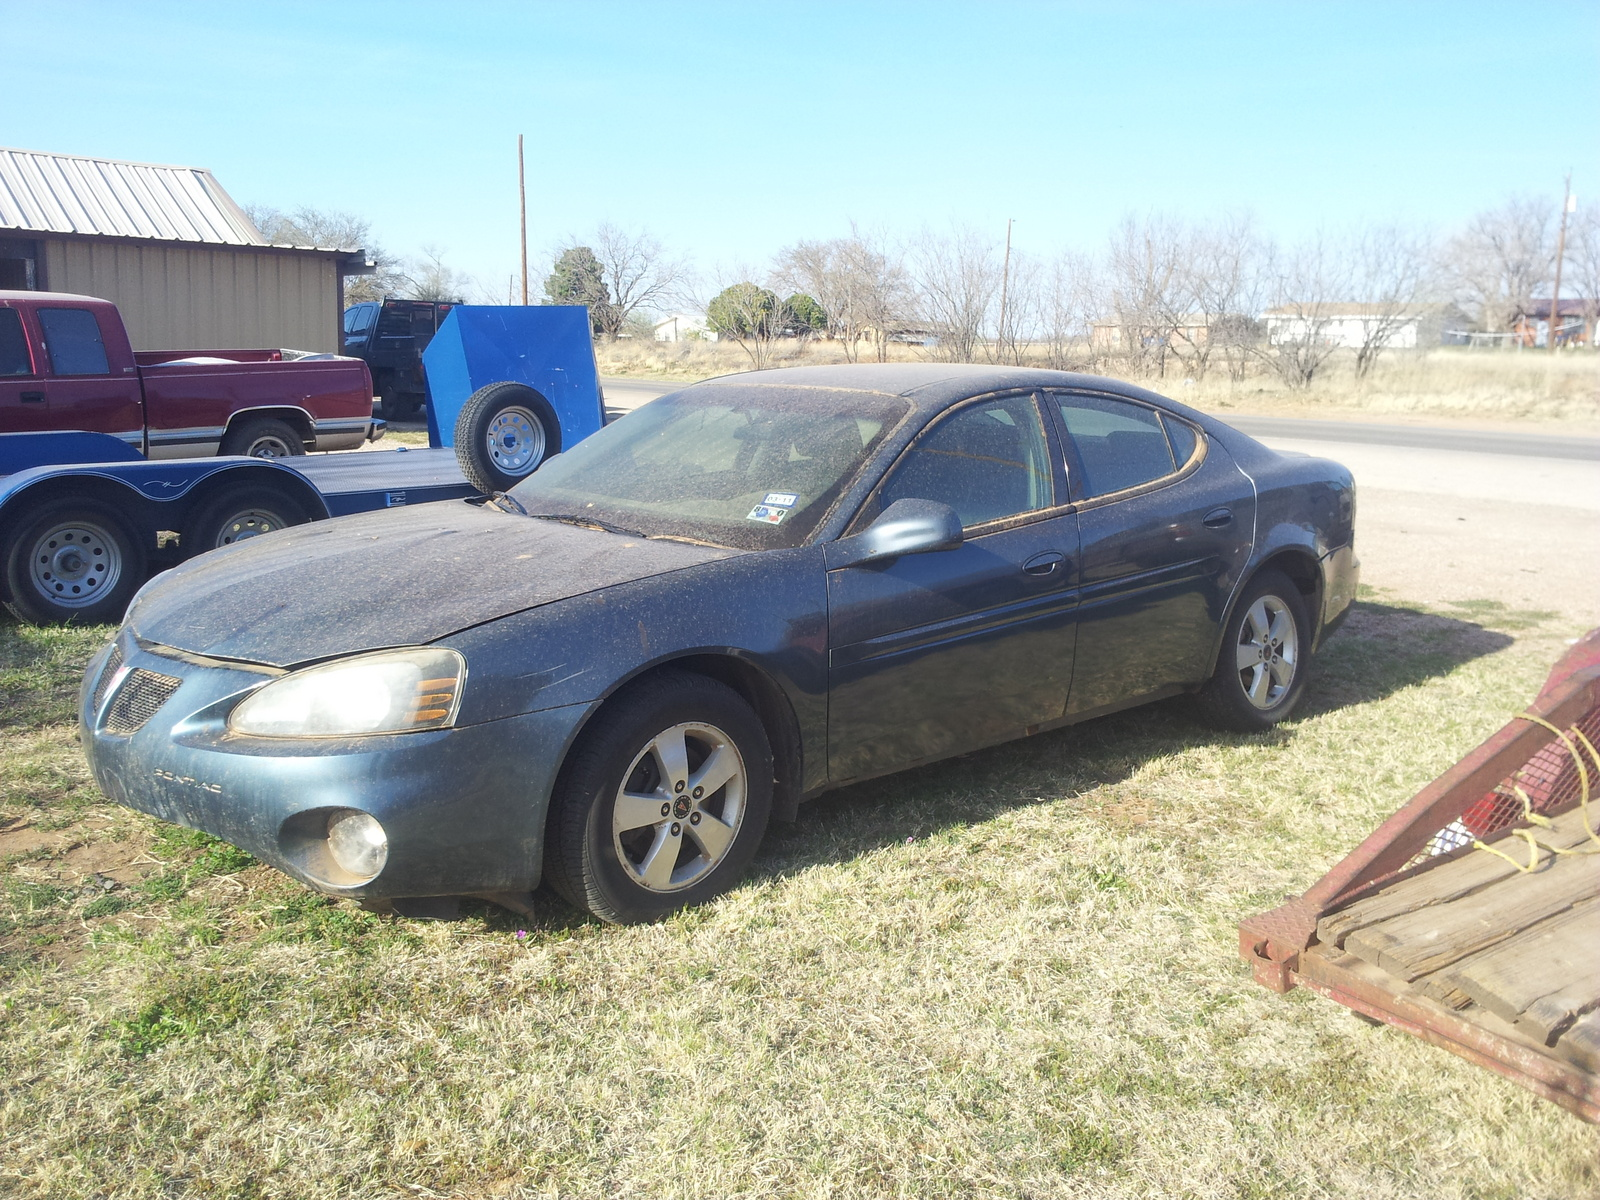 pontiac grand prix questions can you put a 2006 grand prix motor or transmission in a newer or. Black Bedroom Furniture Sets. Home Design Ideas